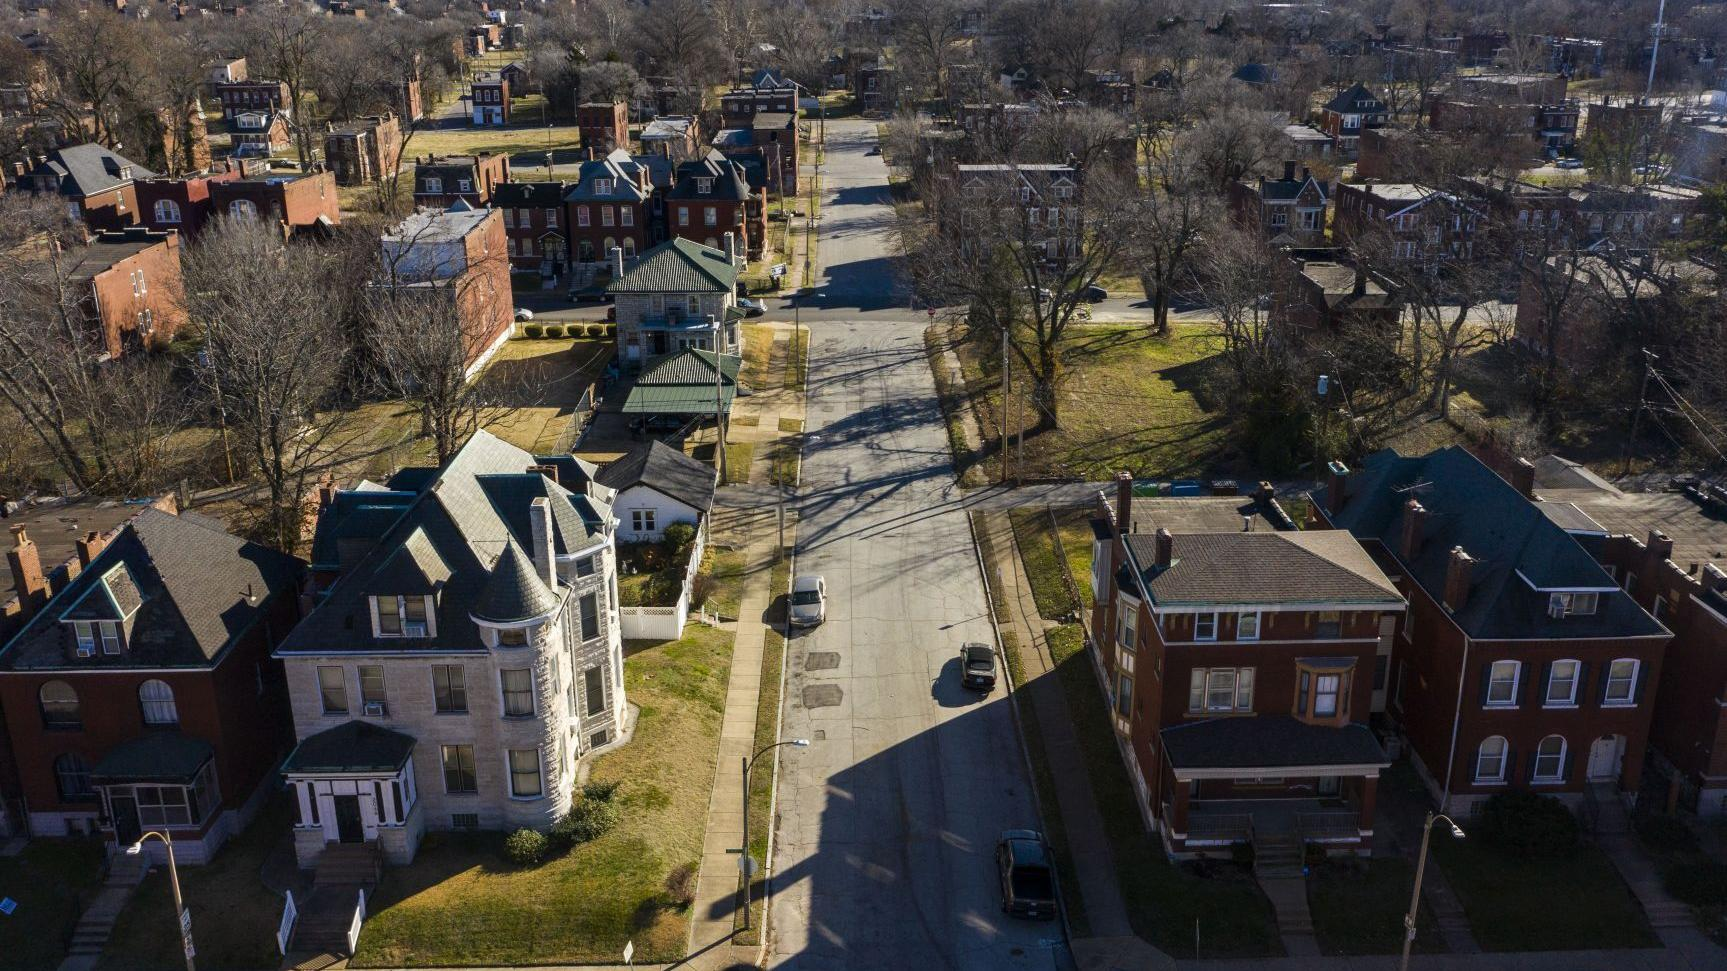 Photos: New taxing district proposed for north St. Louis neighborhoods